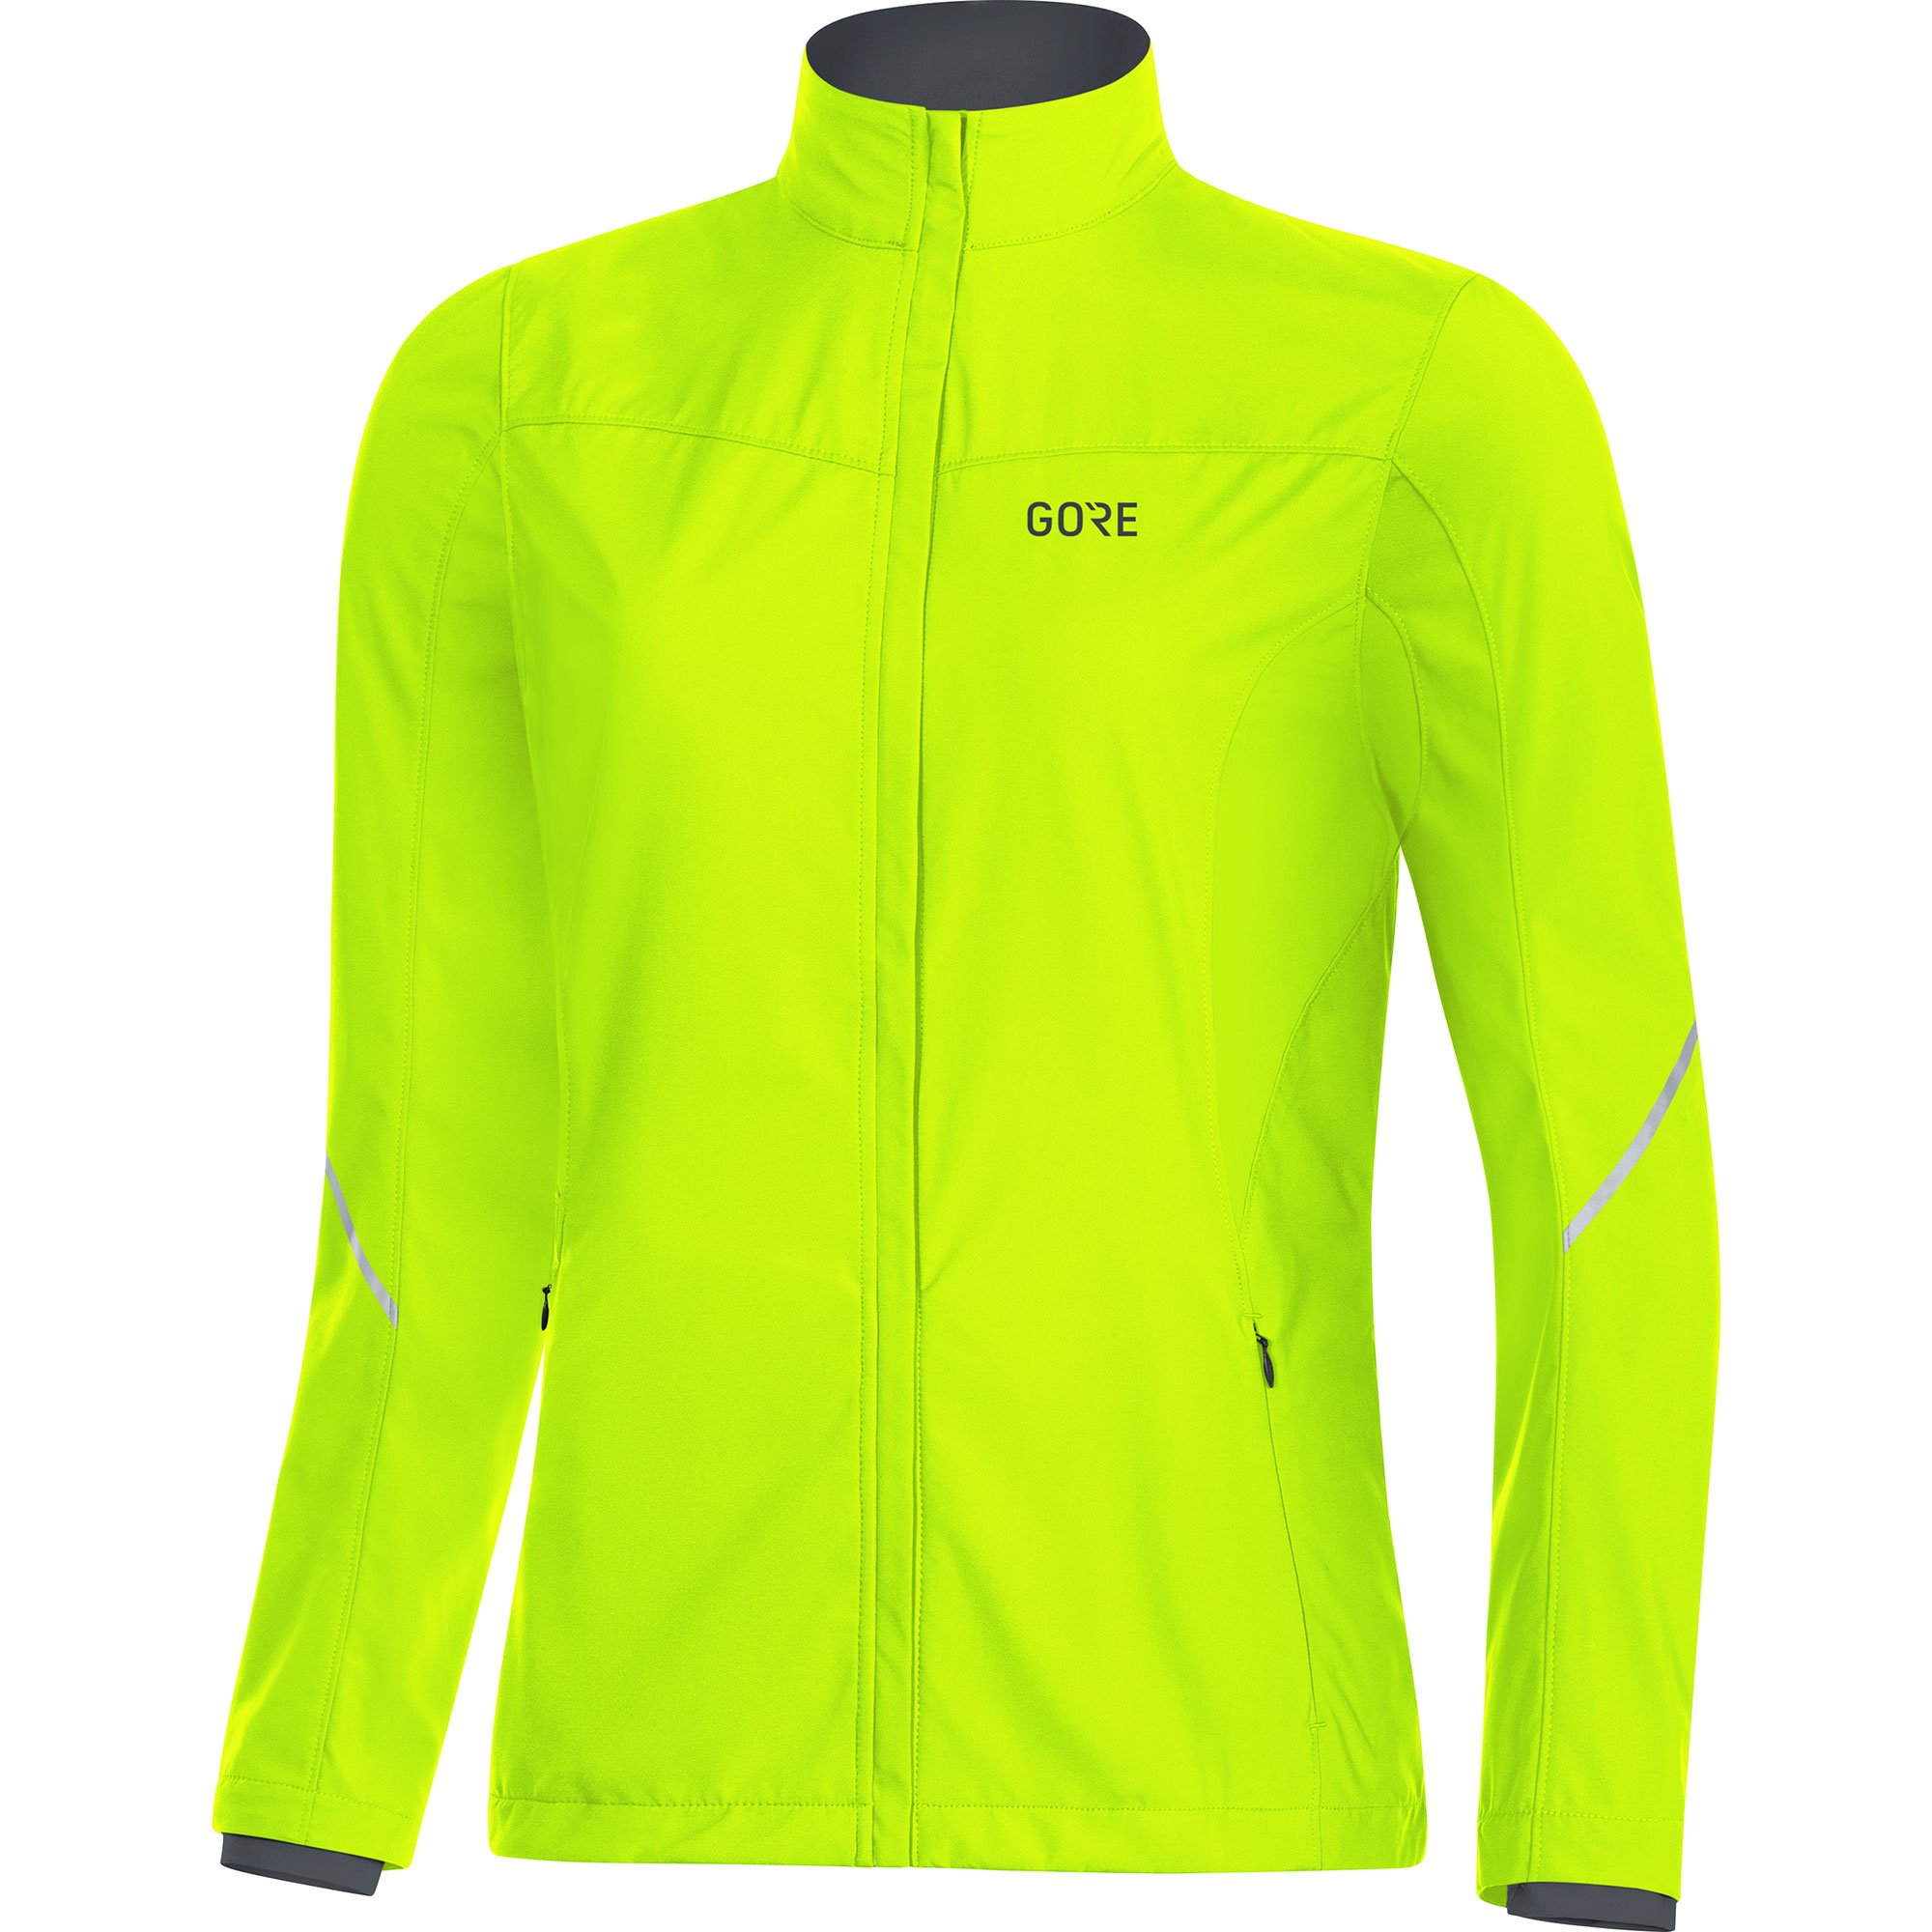 GORE WEAR Women's R3 Partial Windstopper Jacket, Neon Yellow, Small